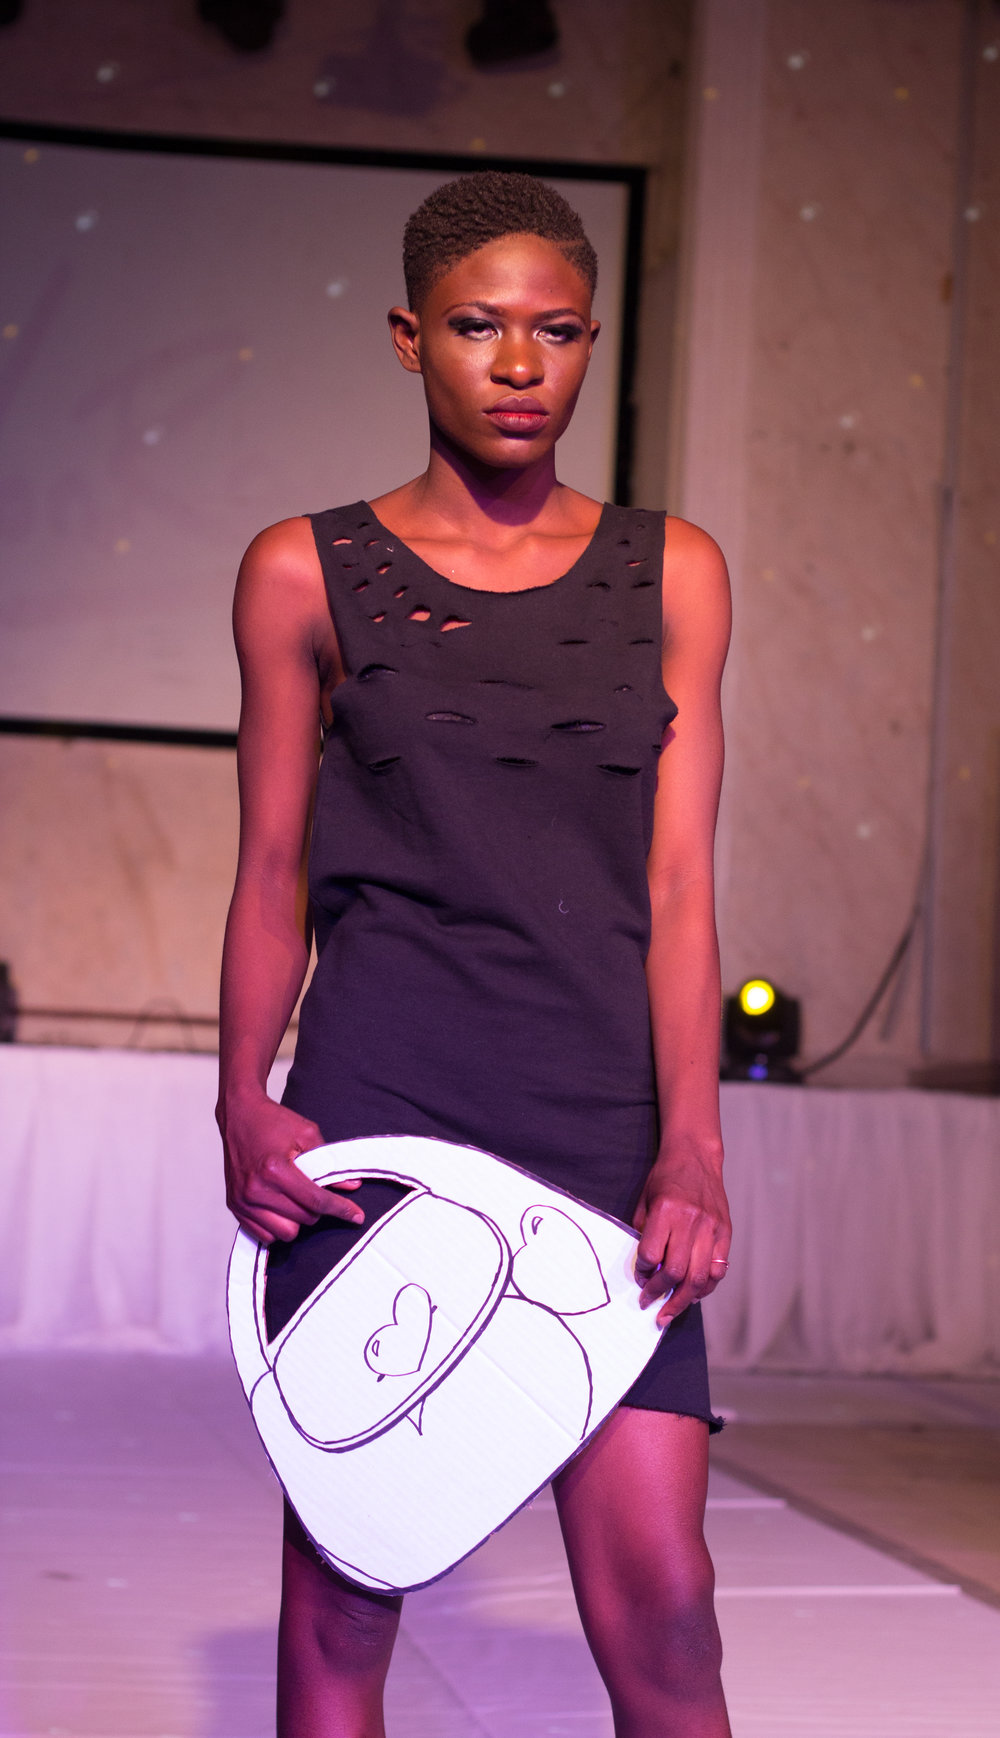 Nigerian Model @ The Eleventh Fashion Show wearing VonRay Designs Distressed Tee Dress and Paper-doll bag Illustrated by Dennis Robinson II of D2Artz & VonRay Designs; PHOTOGRAPHER- Ebiye Wilson Jeke of Wilson Photography (@wilsonjekephotography)